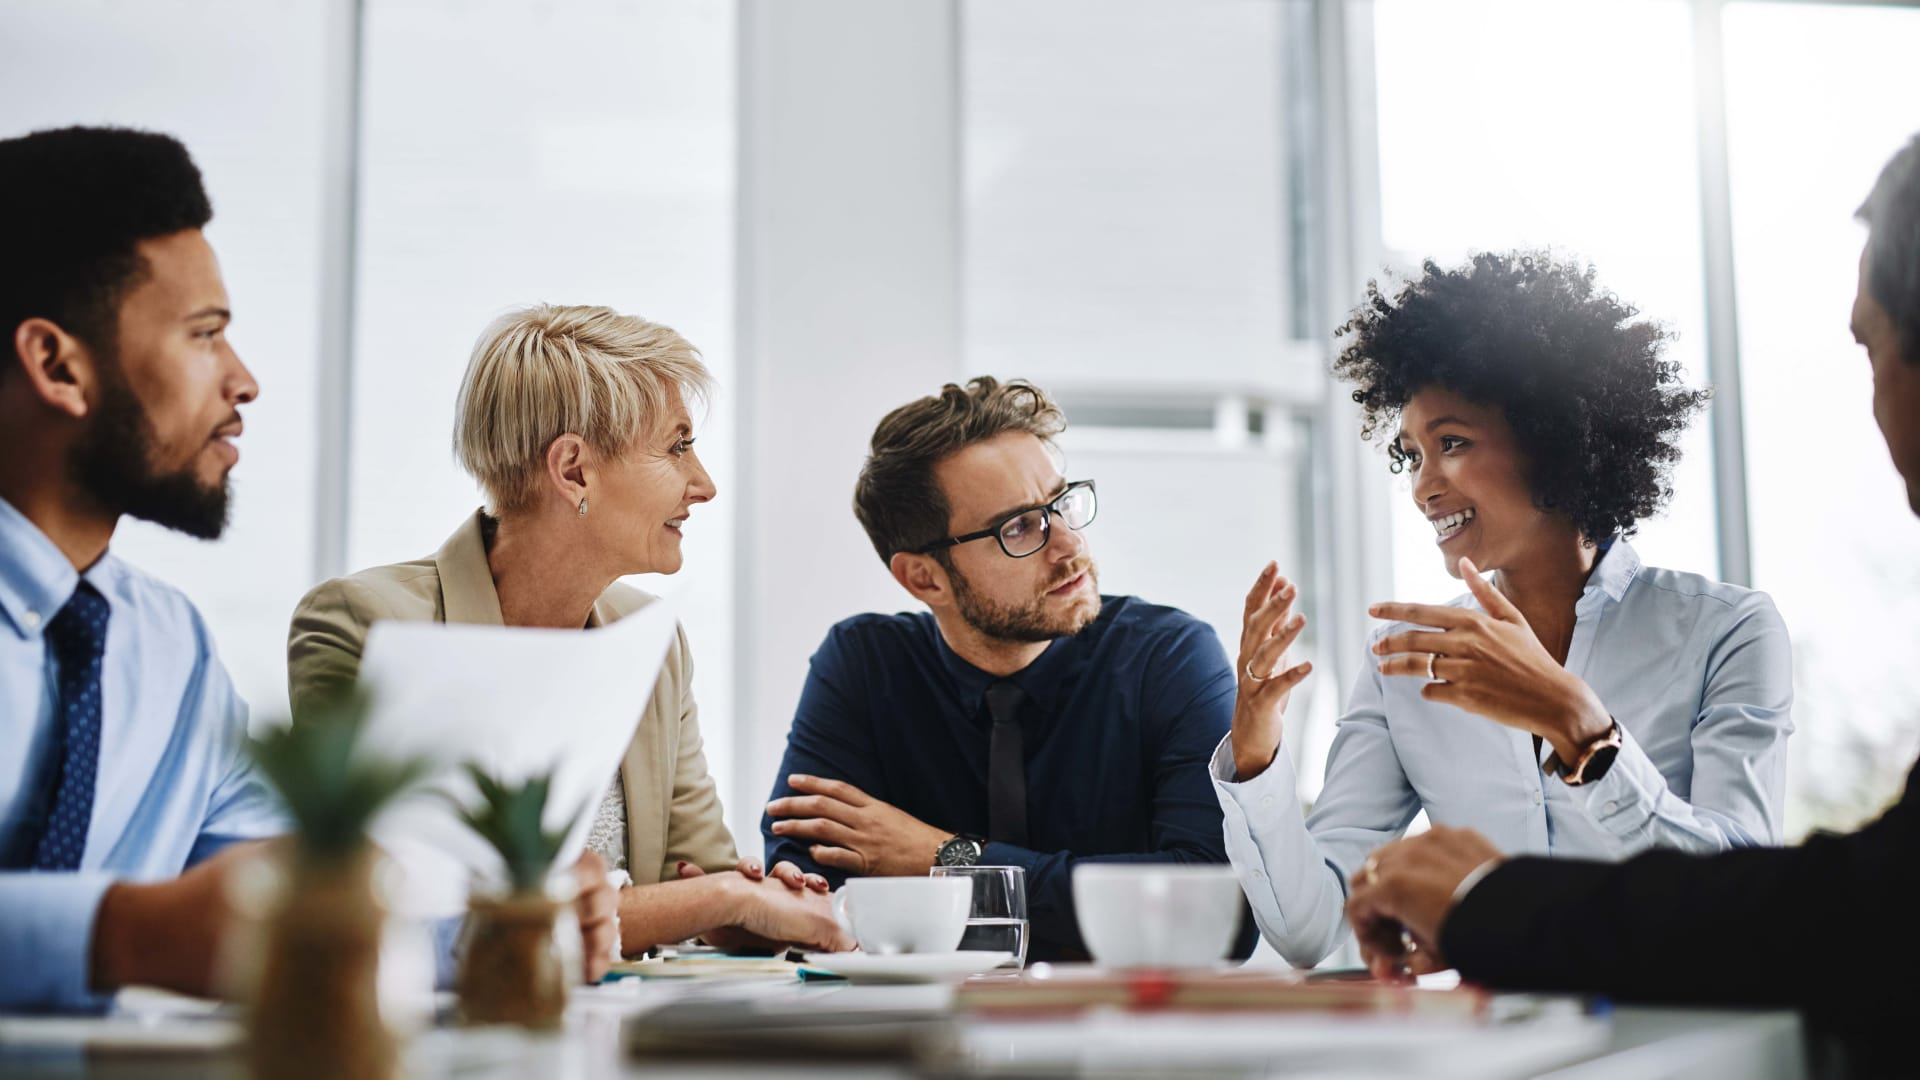 Susan Cain Says There's a Perfect Time for Introverts to Speak Up in Any Meeting. Here It Is